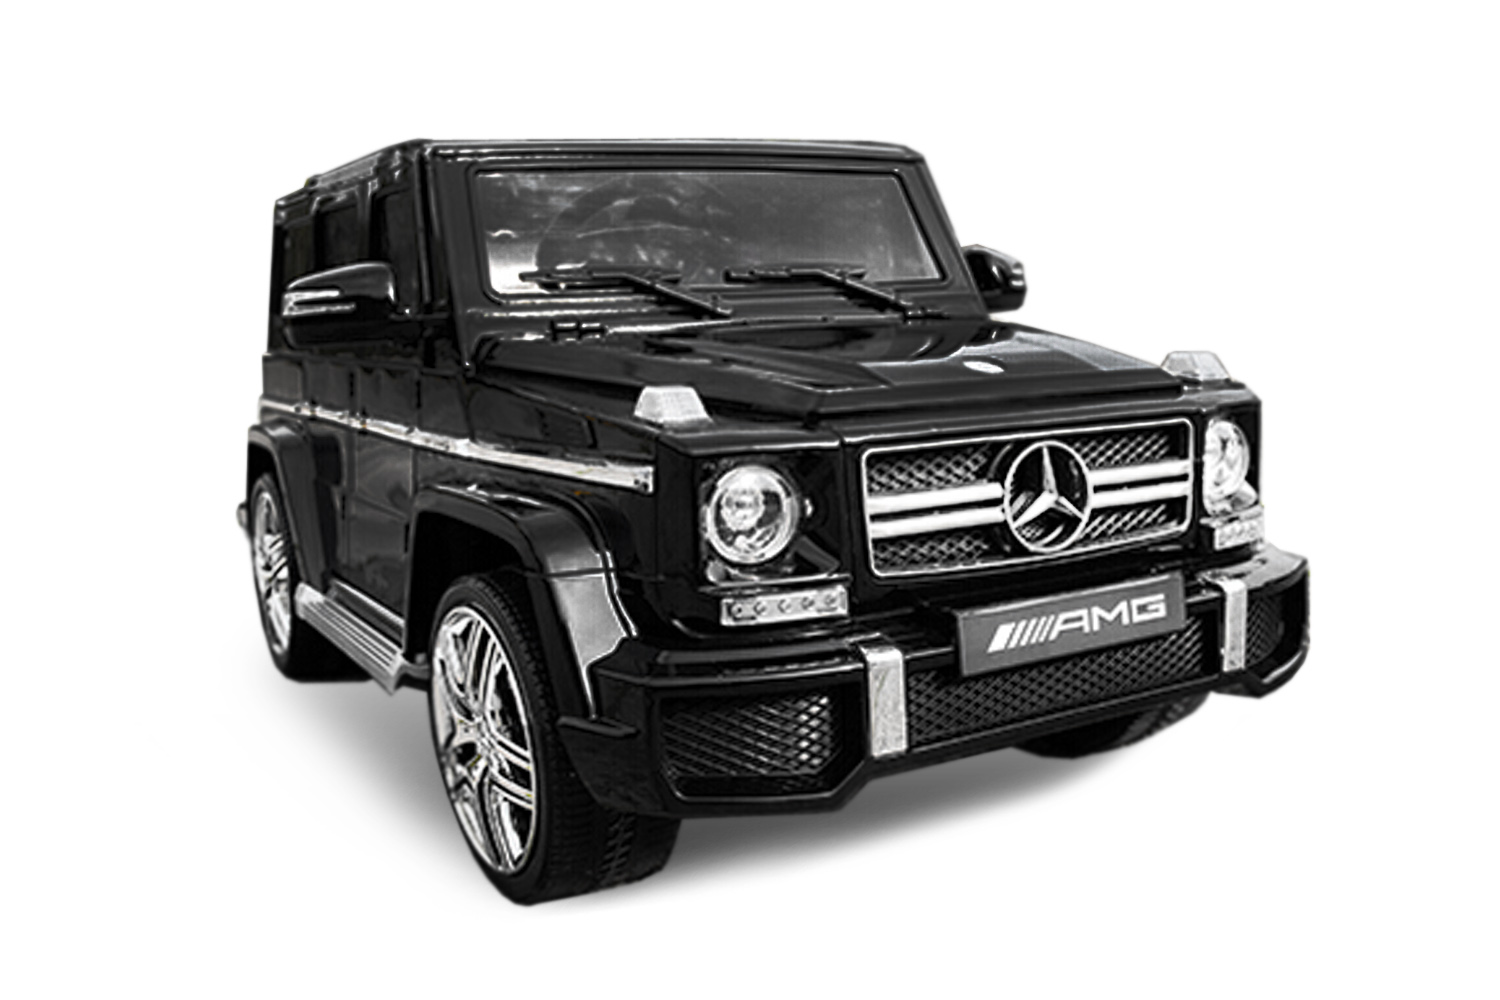 lizenz kinder elektro auto mercedes g63 deluxe suv wagen. Black Bedroom Furniture Sets. Home Design Ideas